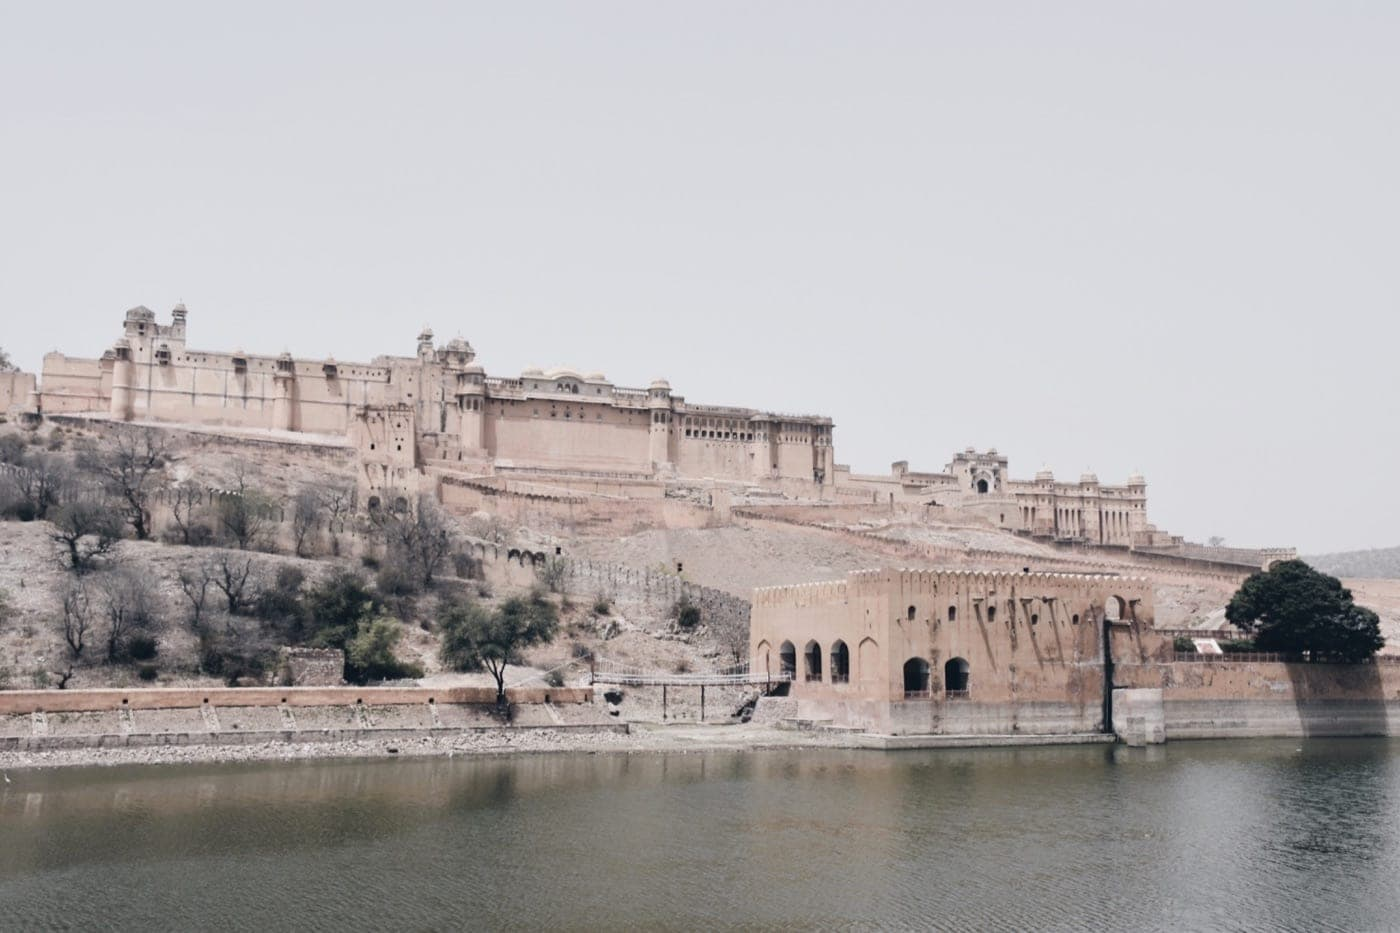 Amber Fort in Amer, Rajasthan